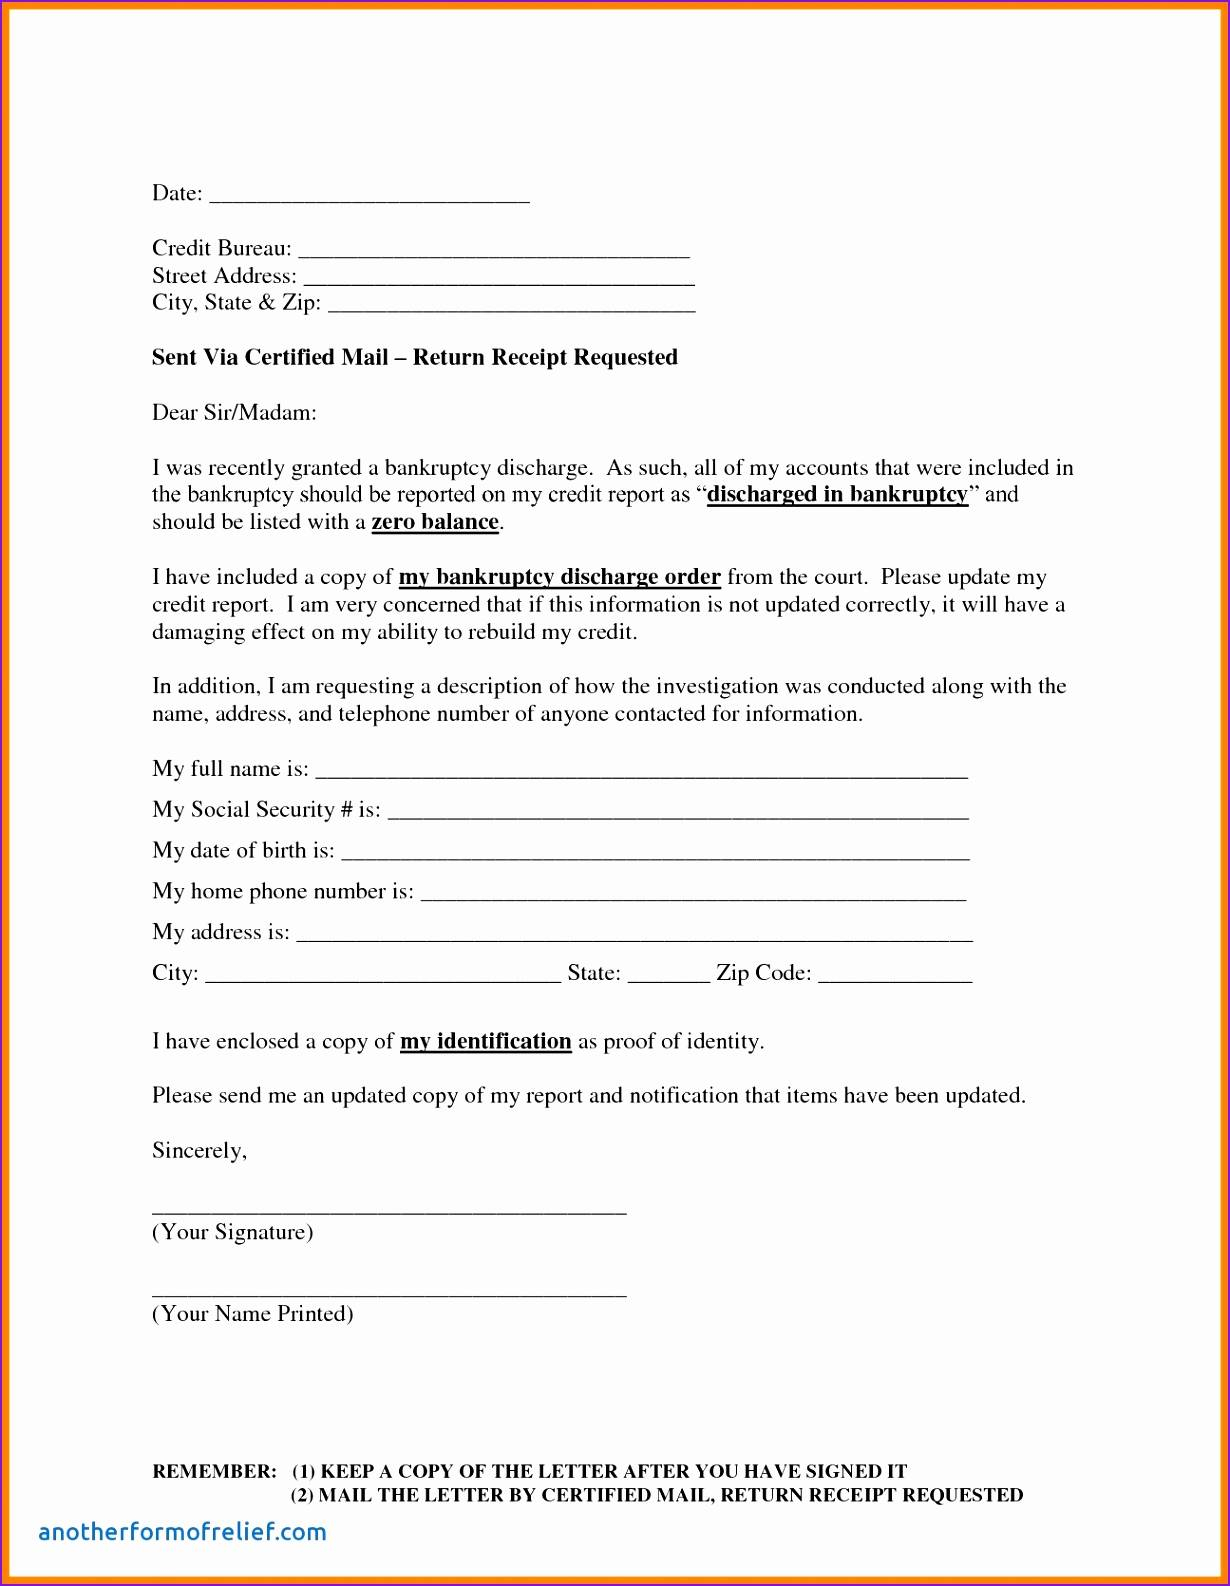 Dispute Letter to Credit Bureau Template - Credit Report Dispute Letter Template Fresh Credit Repair Letter